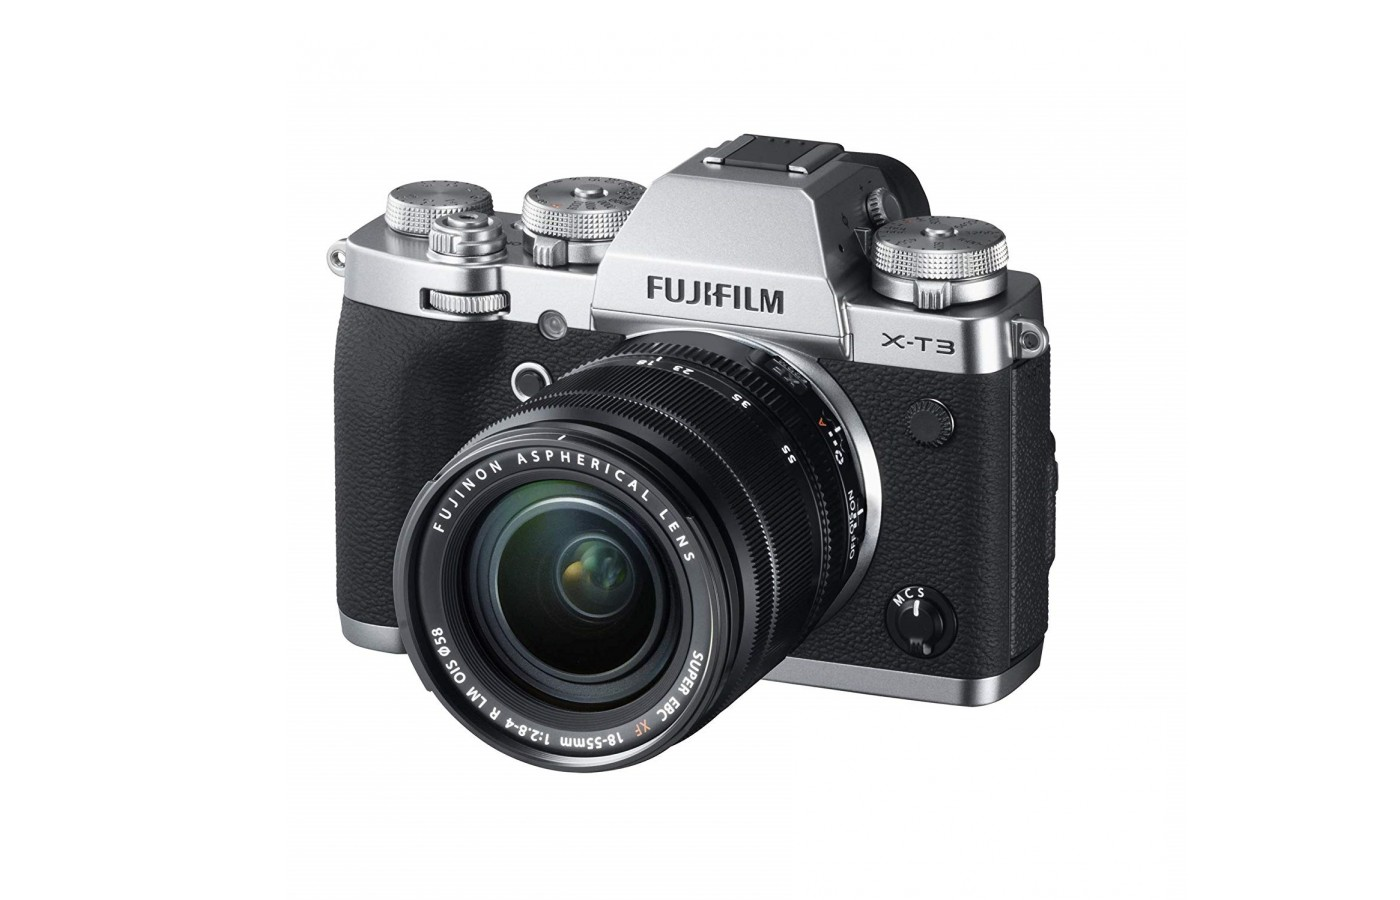 The Fujifilm X-T3 offers a new back-illuminated sensor for higher resolution.